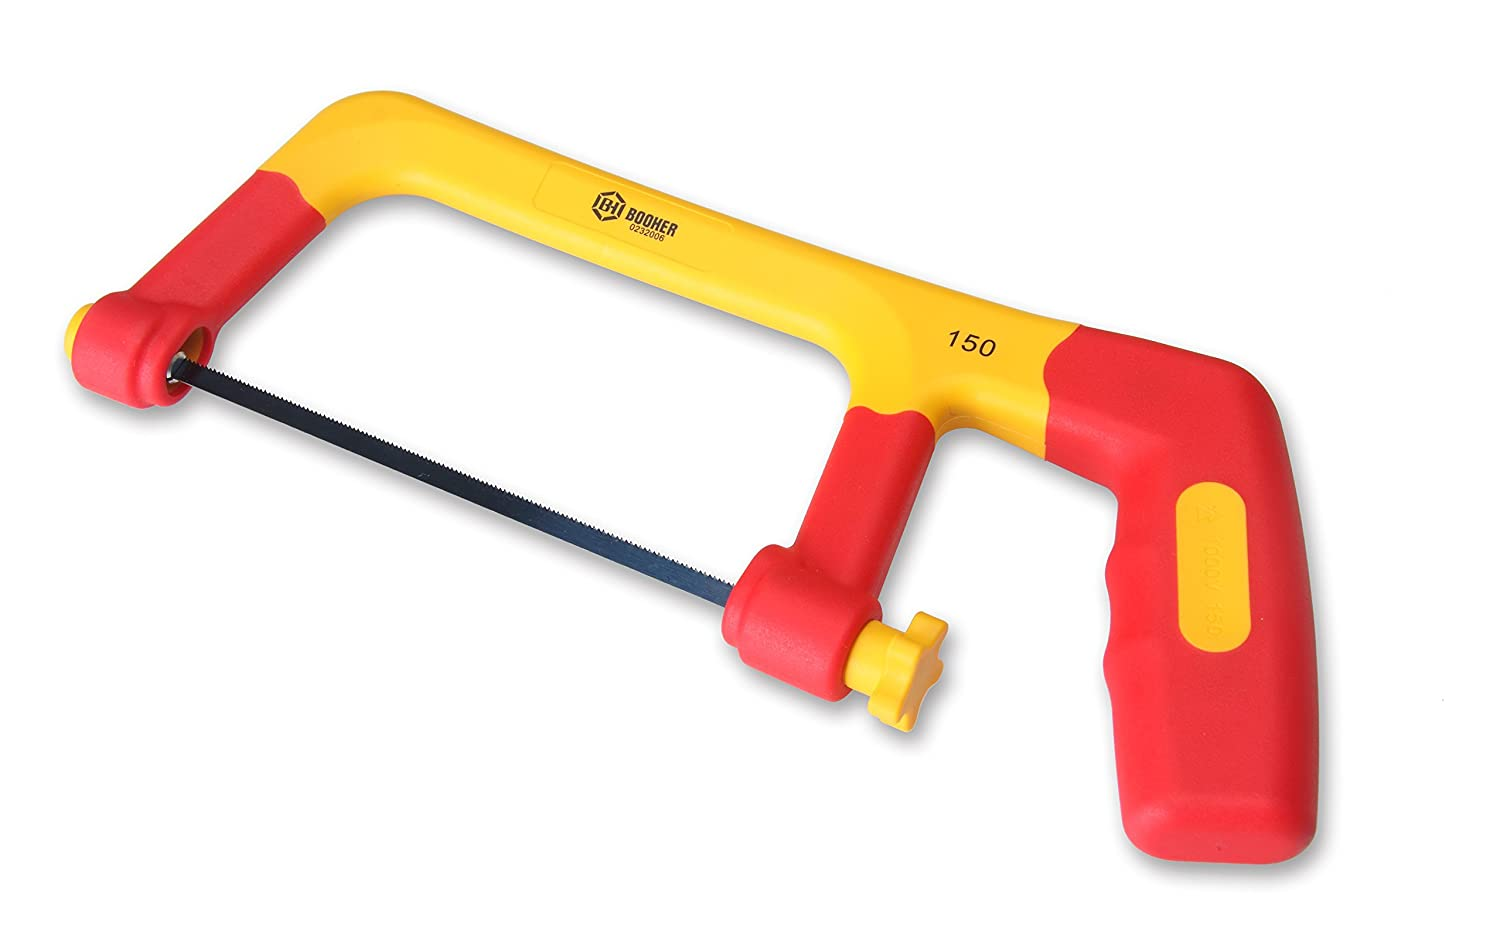 Ltd BOOHER 0232006 1000V Insulated Junior Hacksaw Booher Industrial Tools Co Shanghai